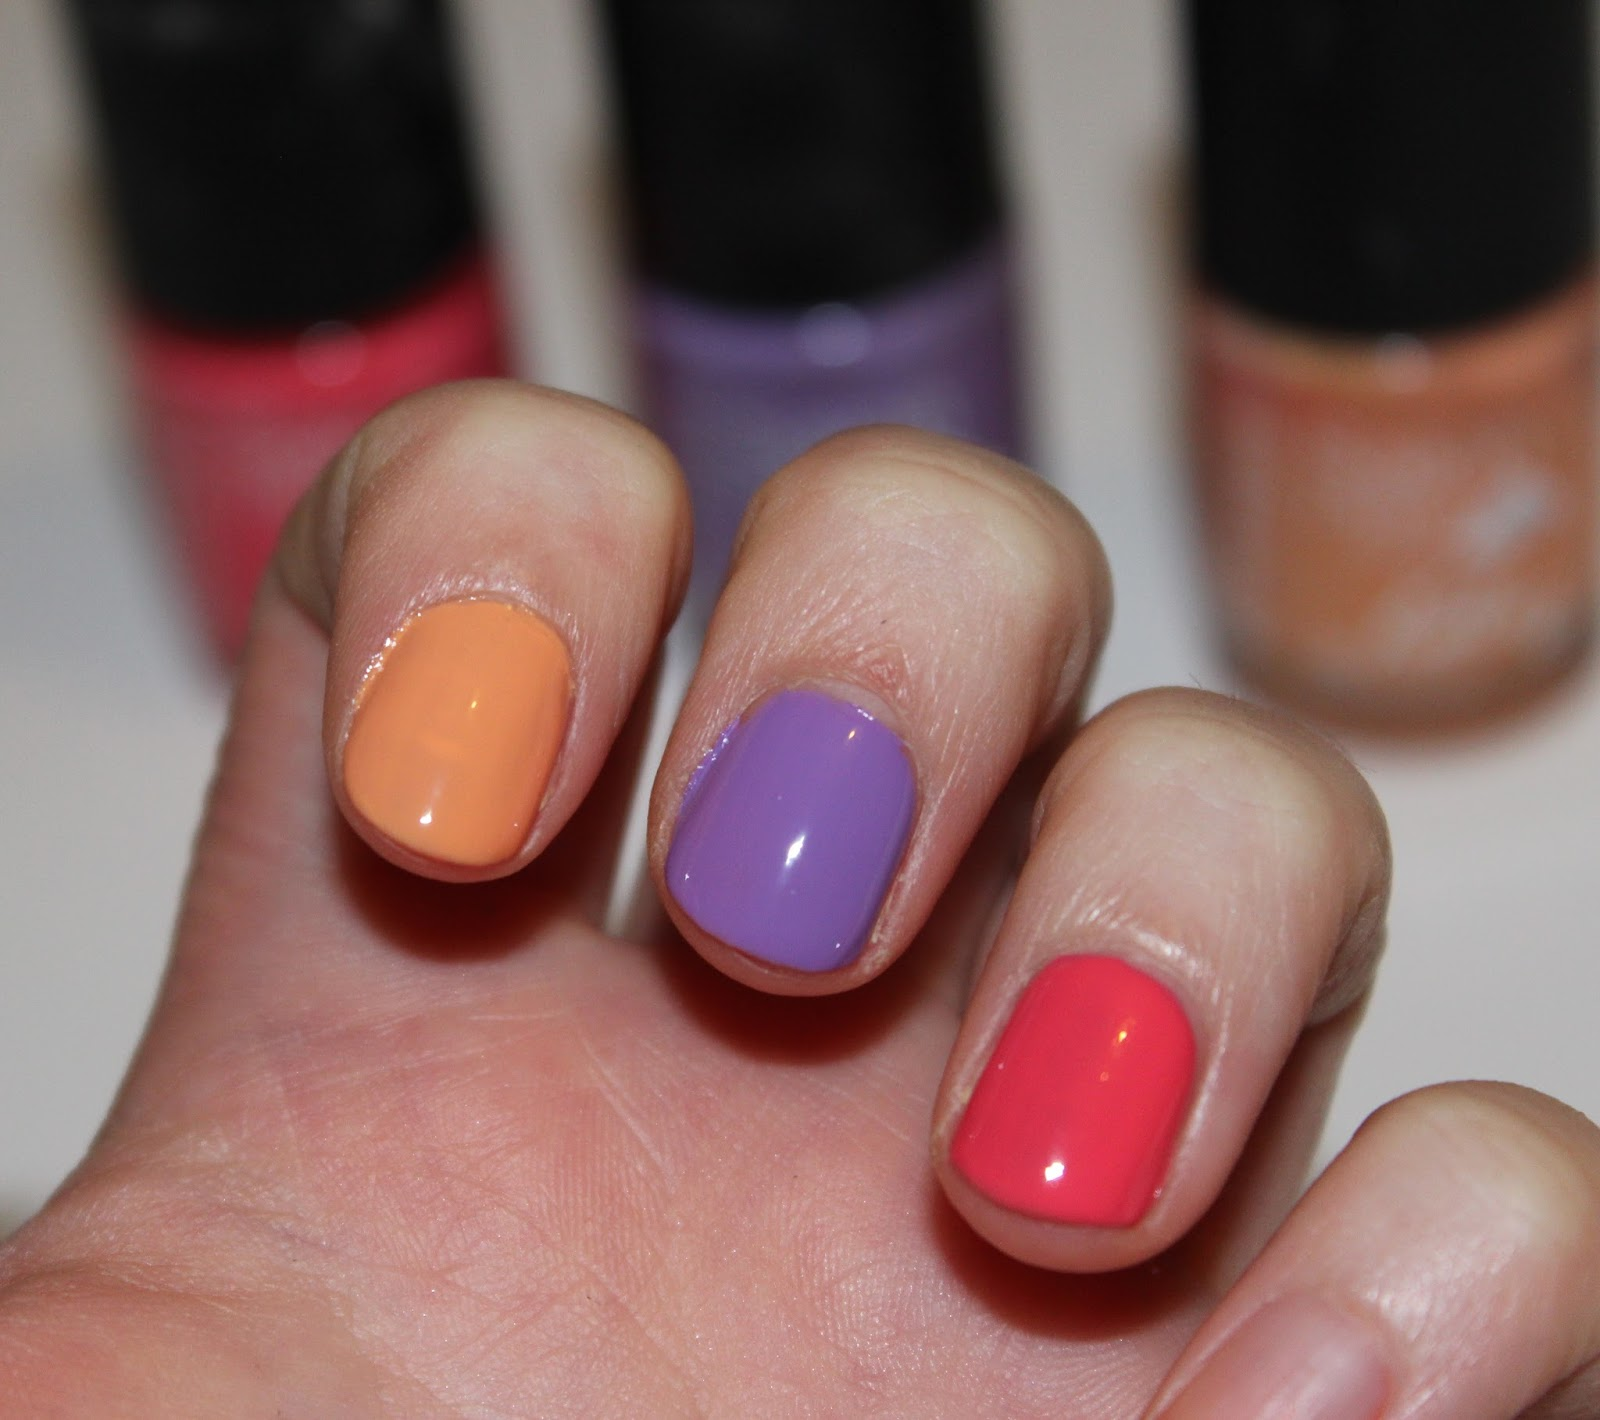 Jasmine Marie Beauty: Salon worthy nails for under a fiver- thanks ...